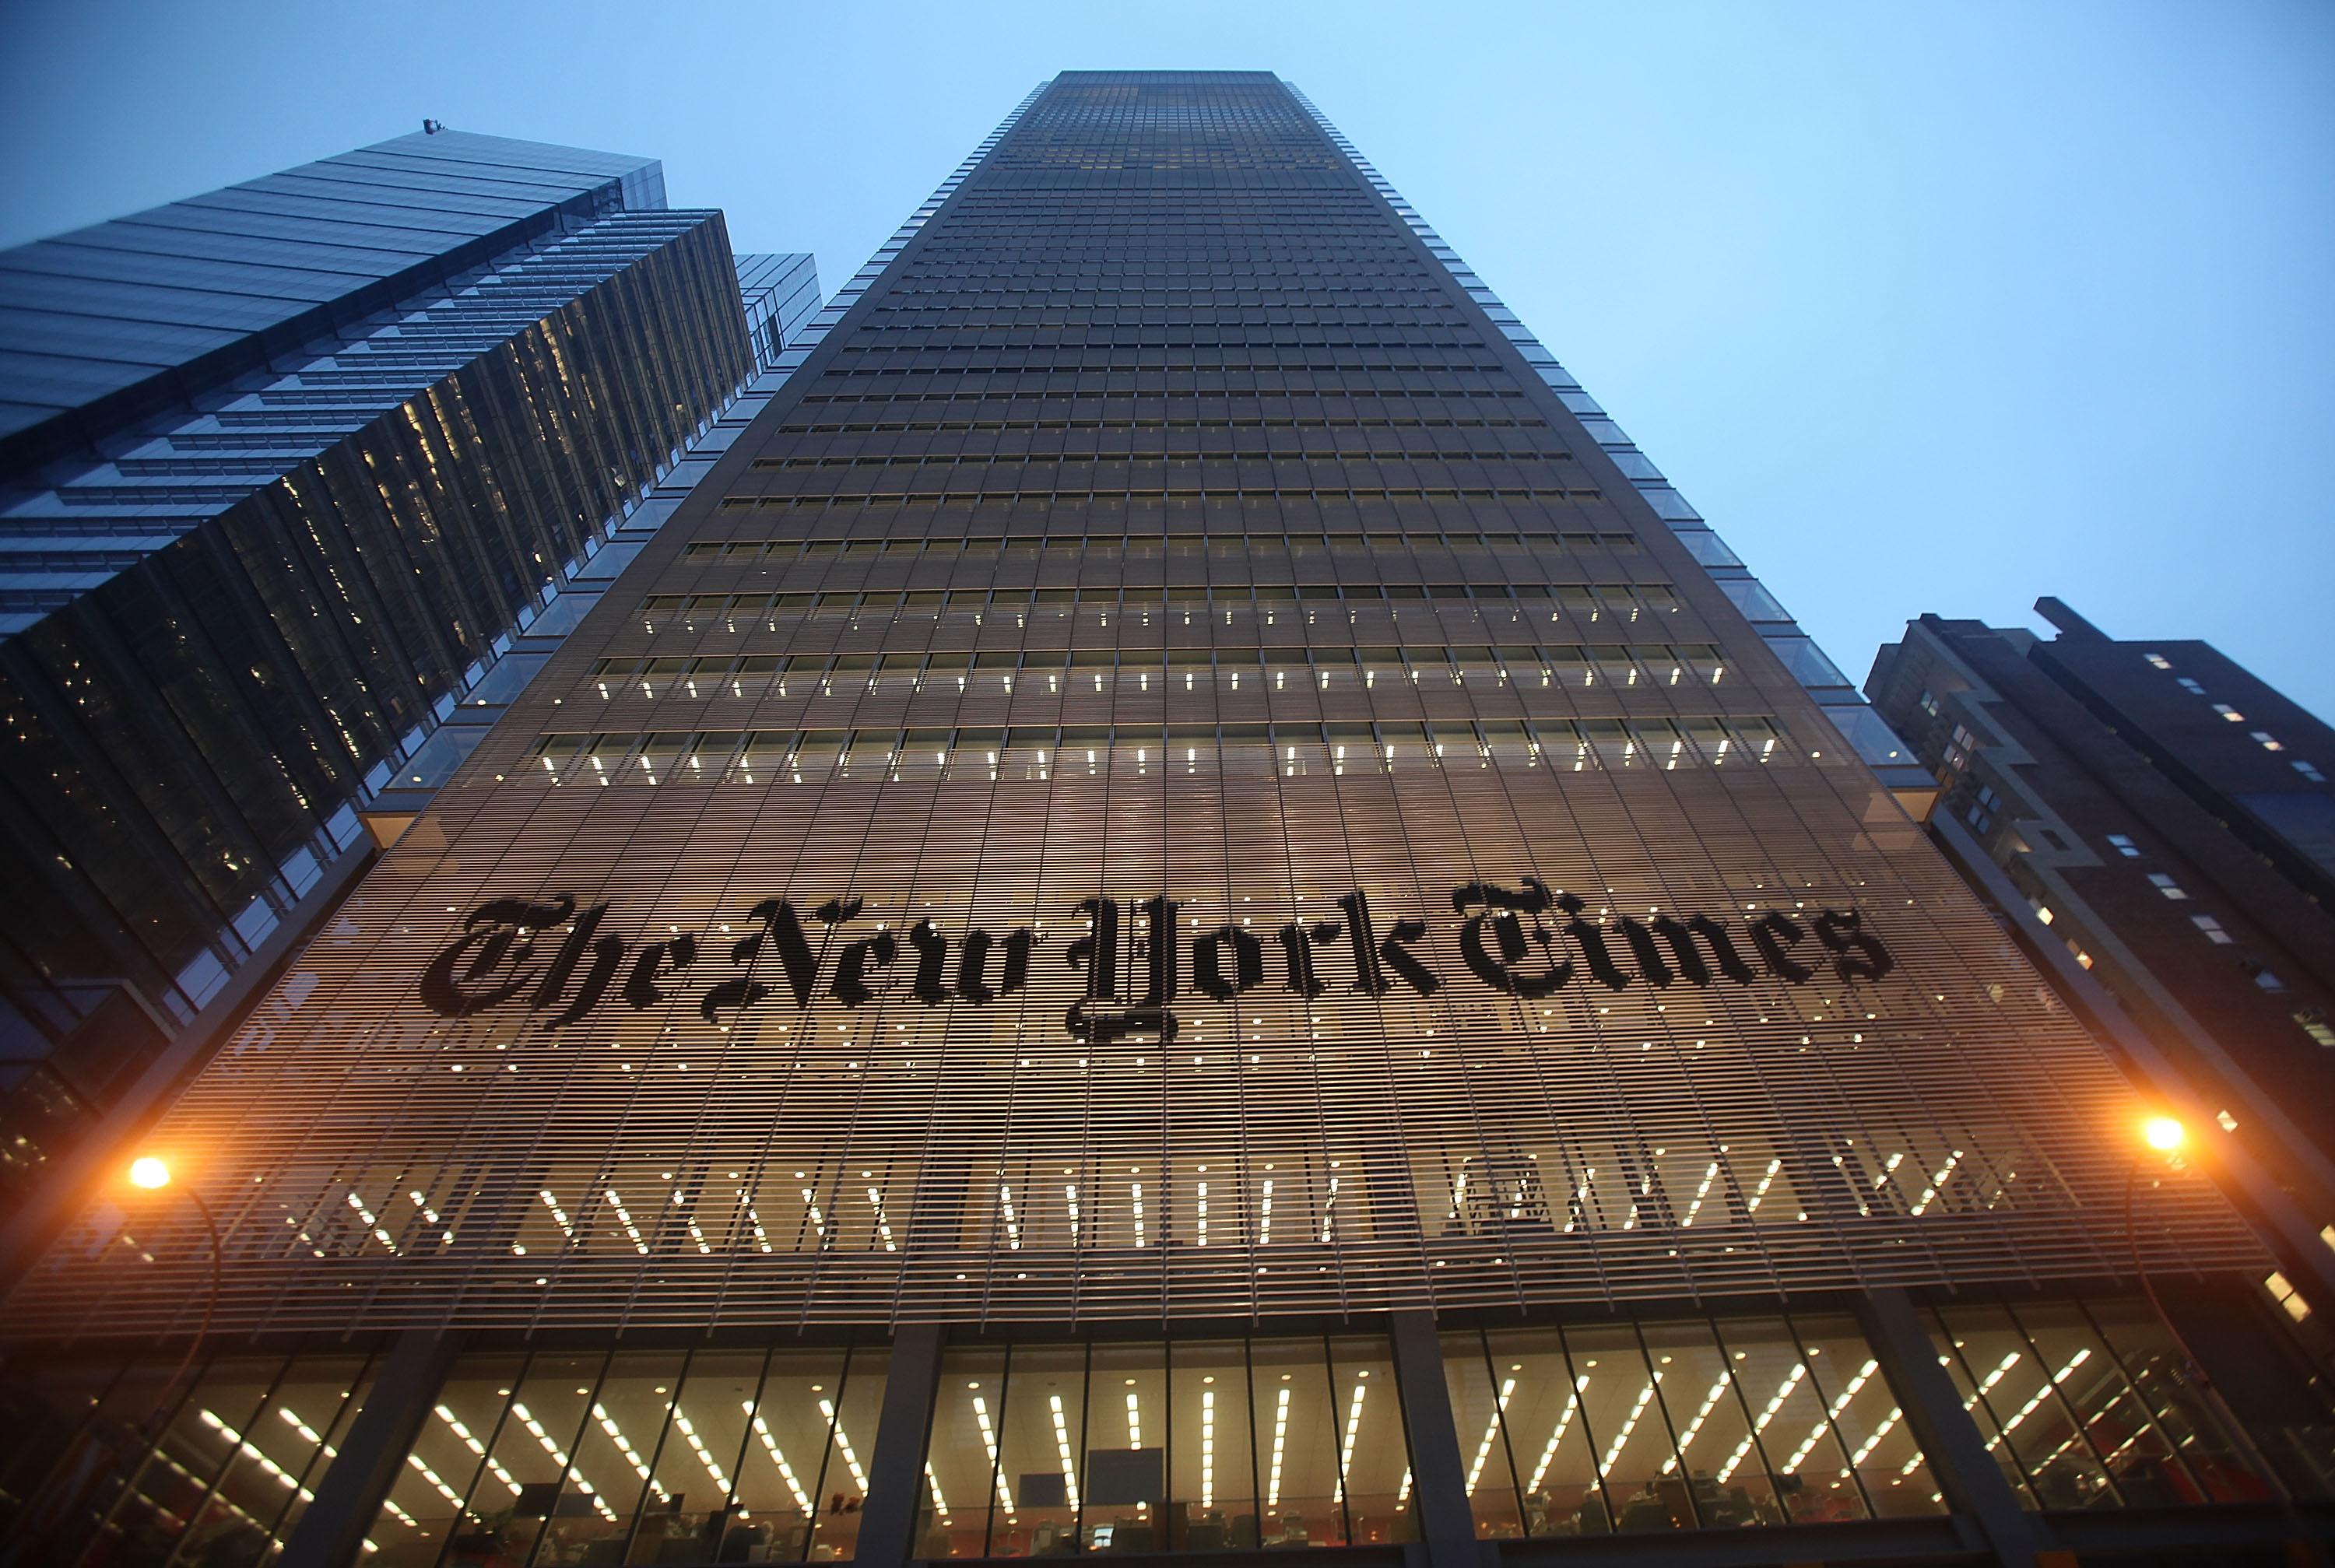 The New York Times faced a 4-month retaliation from Chinese hackers after exposé on official's ...